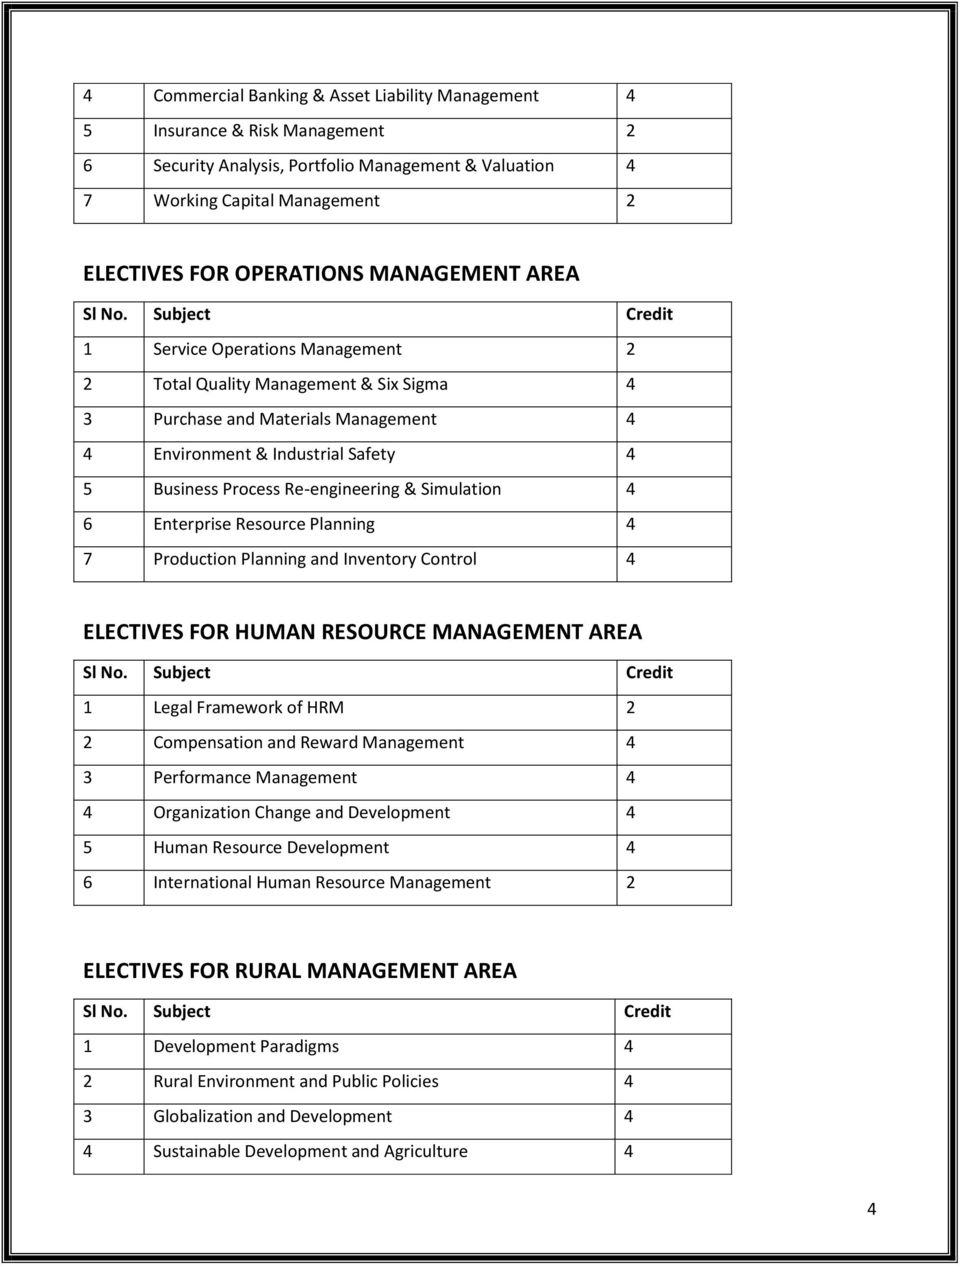 Subject Credit 1 Service Operations Management 2 2 Total Quality Management & Six Sigma 4 3 Purchase and Materials Management 4 4 Environment & Industrial Safety 4 5 Business Process Re-engineering &